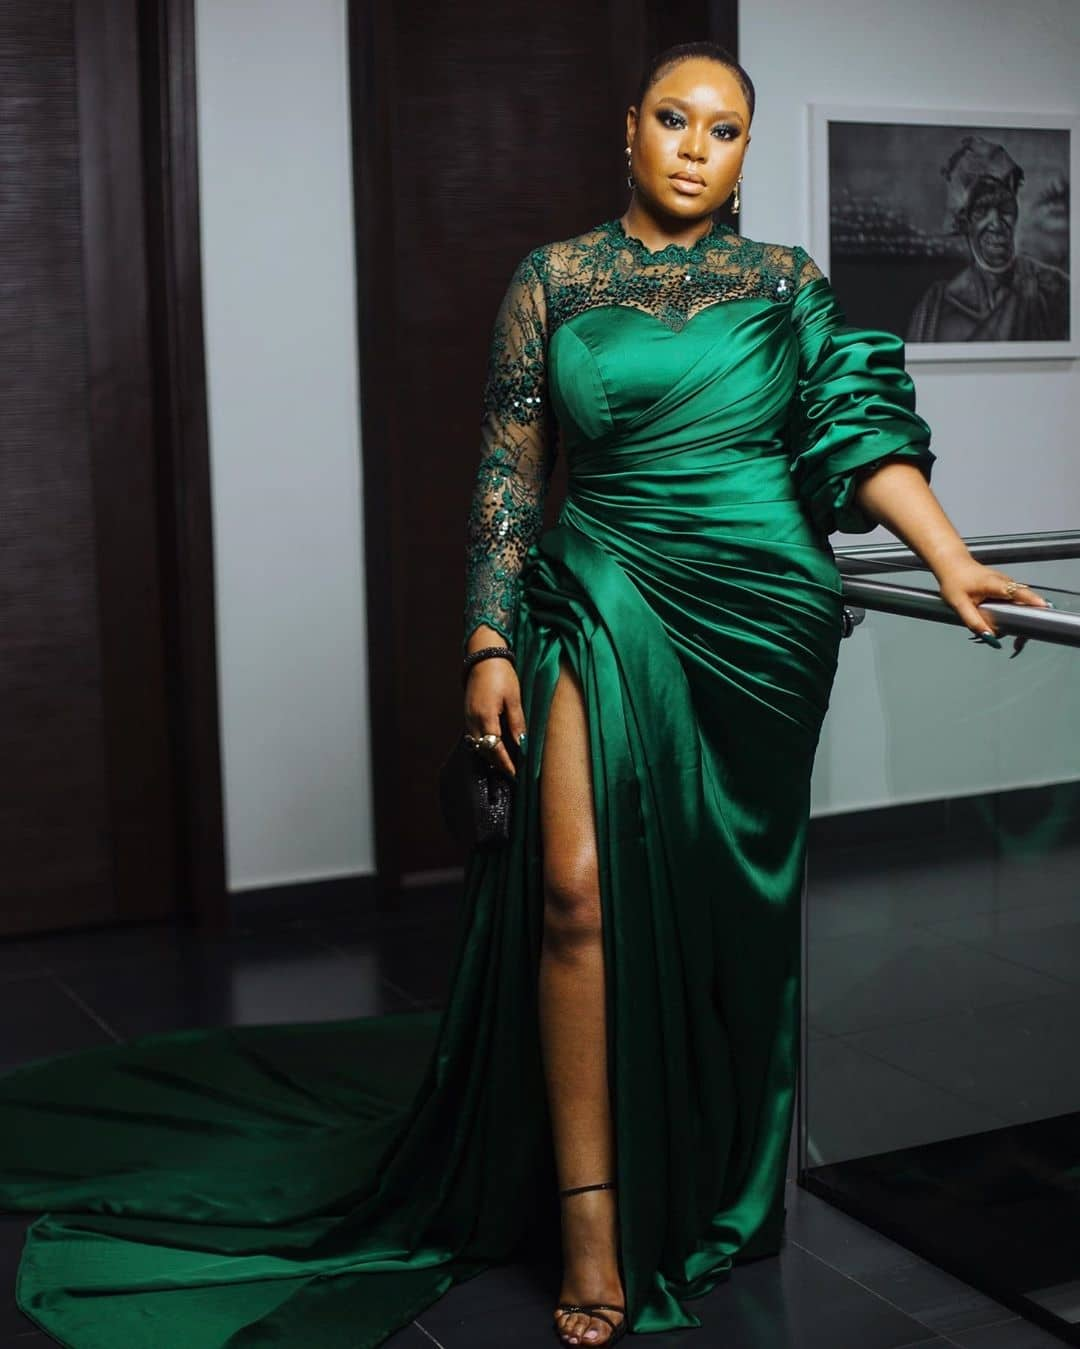 mimi-onalaja-emerald-green-dress-ebony-life-films-tv-your-excellency-movie-premiere-inauguration-ball